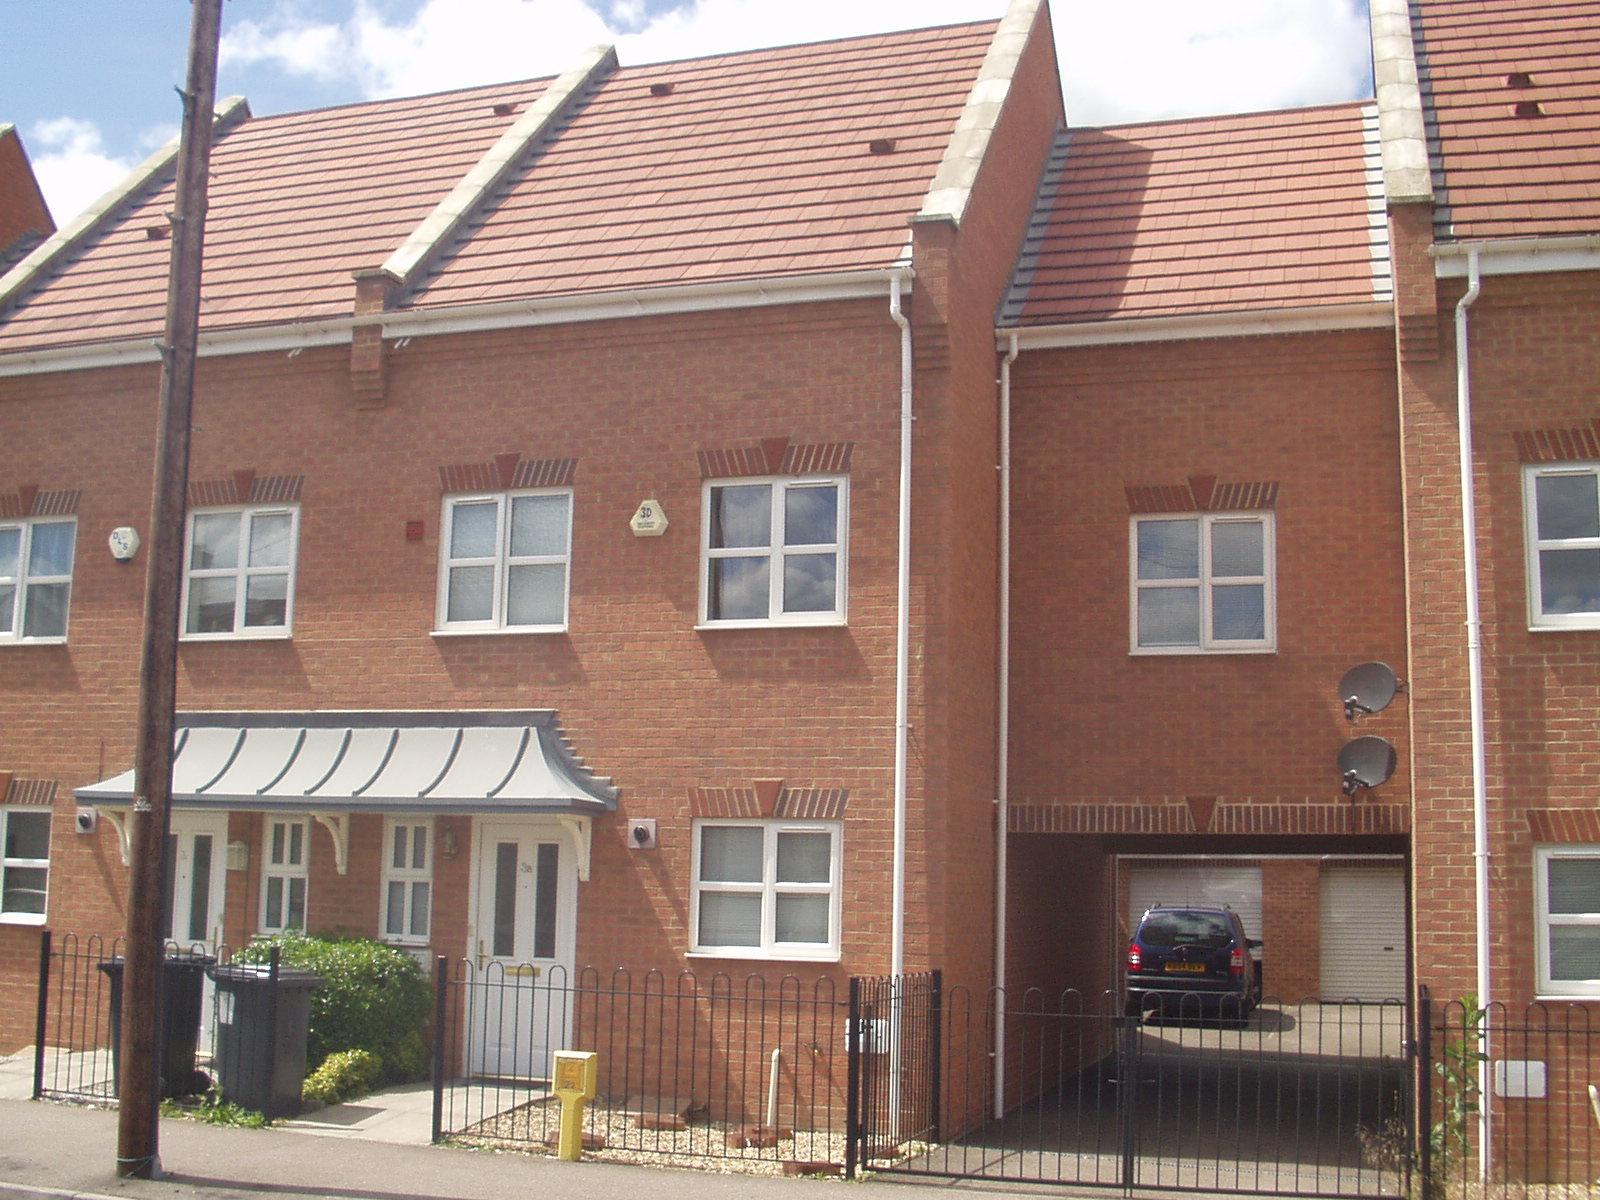 3 bedroom townhouse for rent in bedford rentals lettings For3 Bedroom Townhouse For Rent